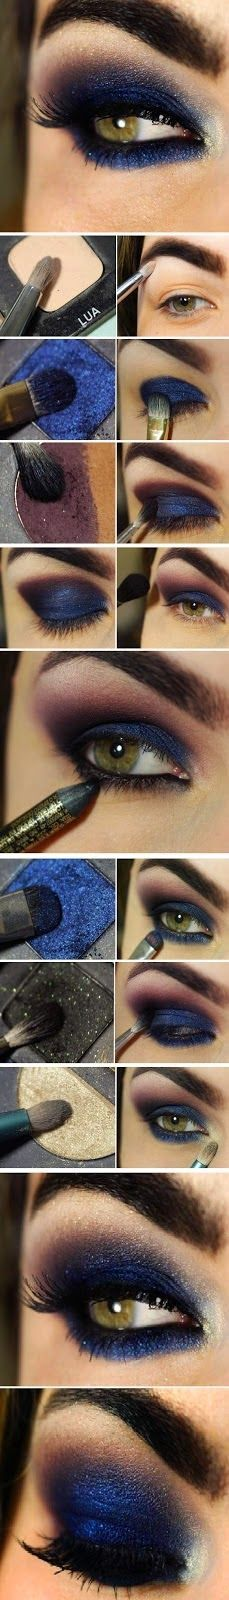 Amazing Step by Step Navy Blue Smokey Eye Makeup Tutorial - Gorgeous!! <3 Lane